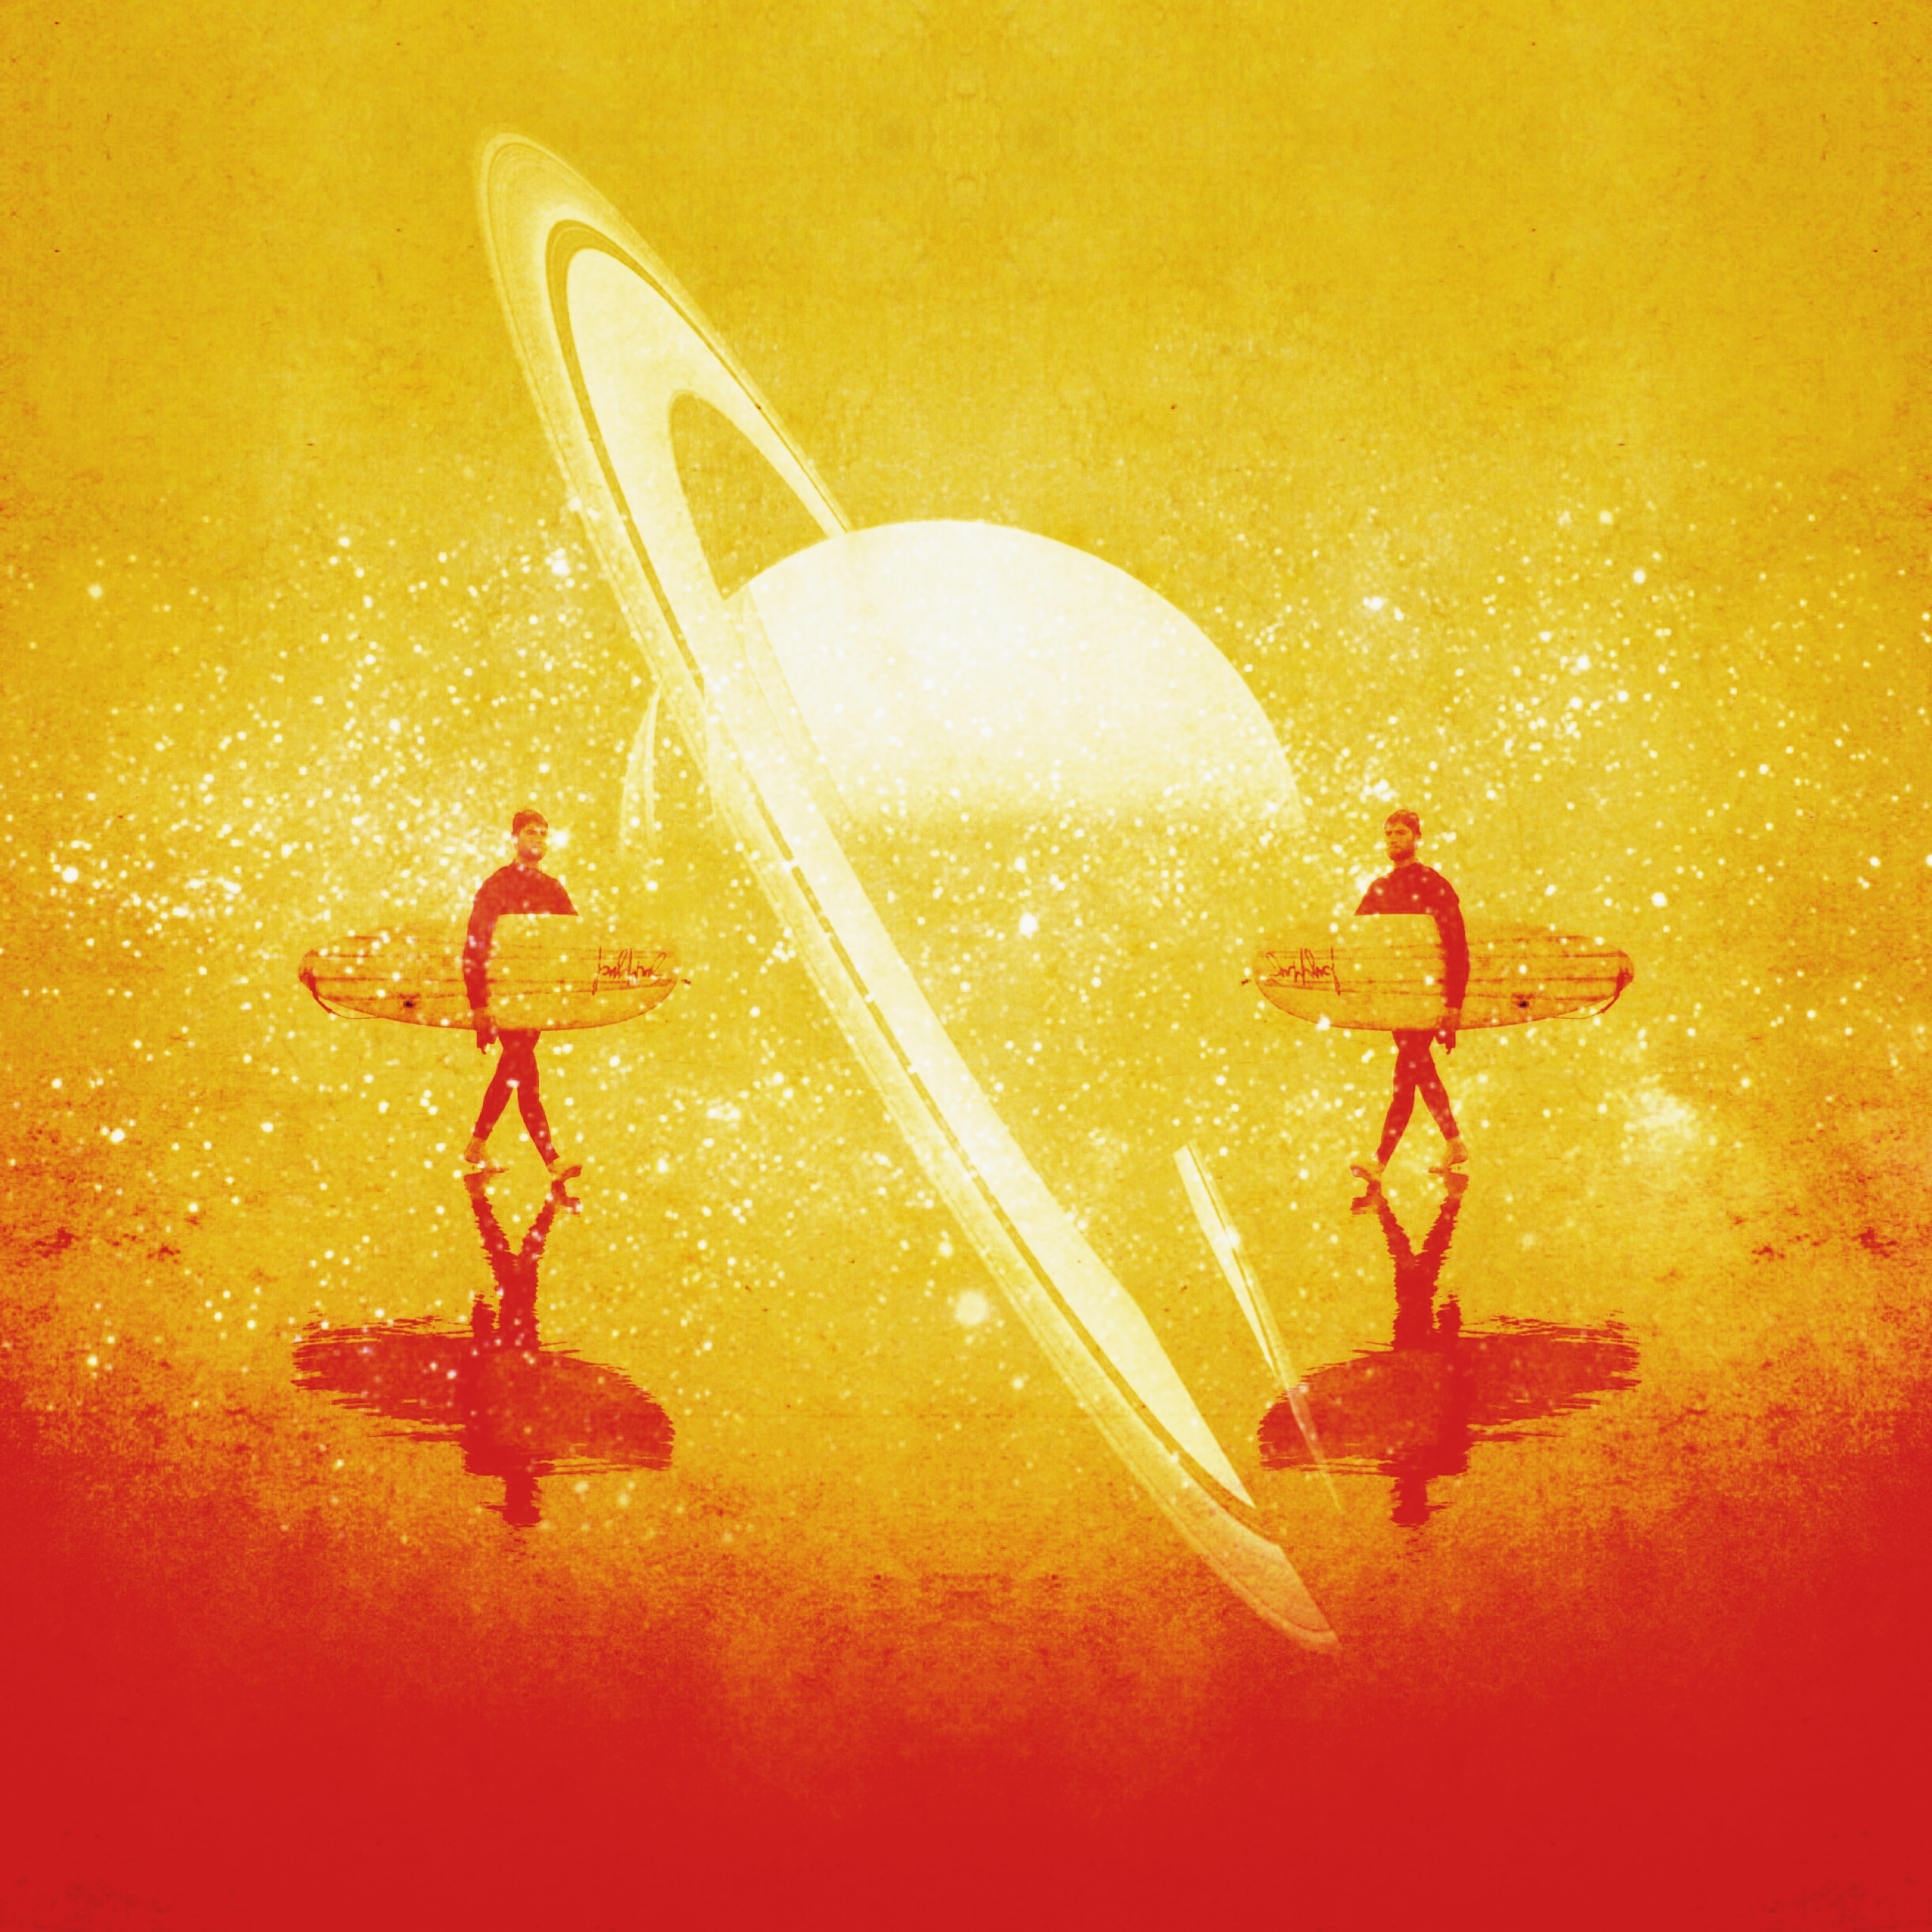 Petyr Campos ~ Surfers No. 56 (Space Surfers)